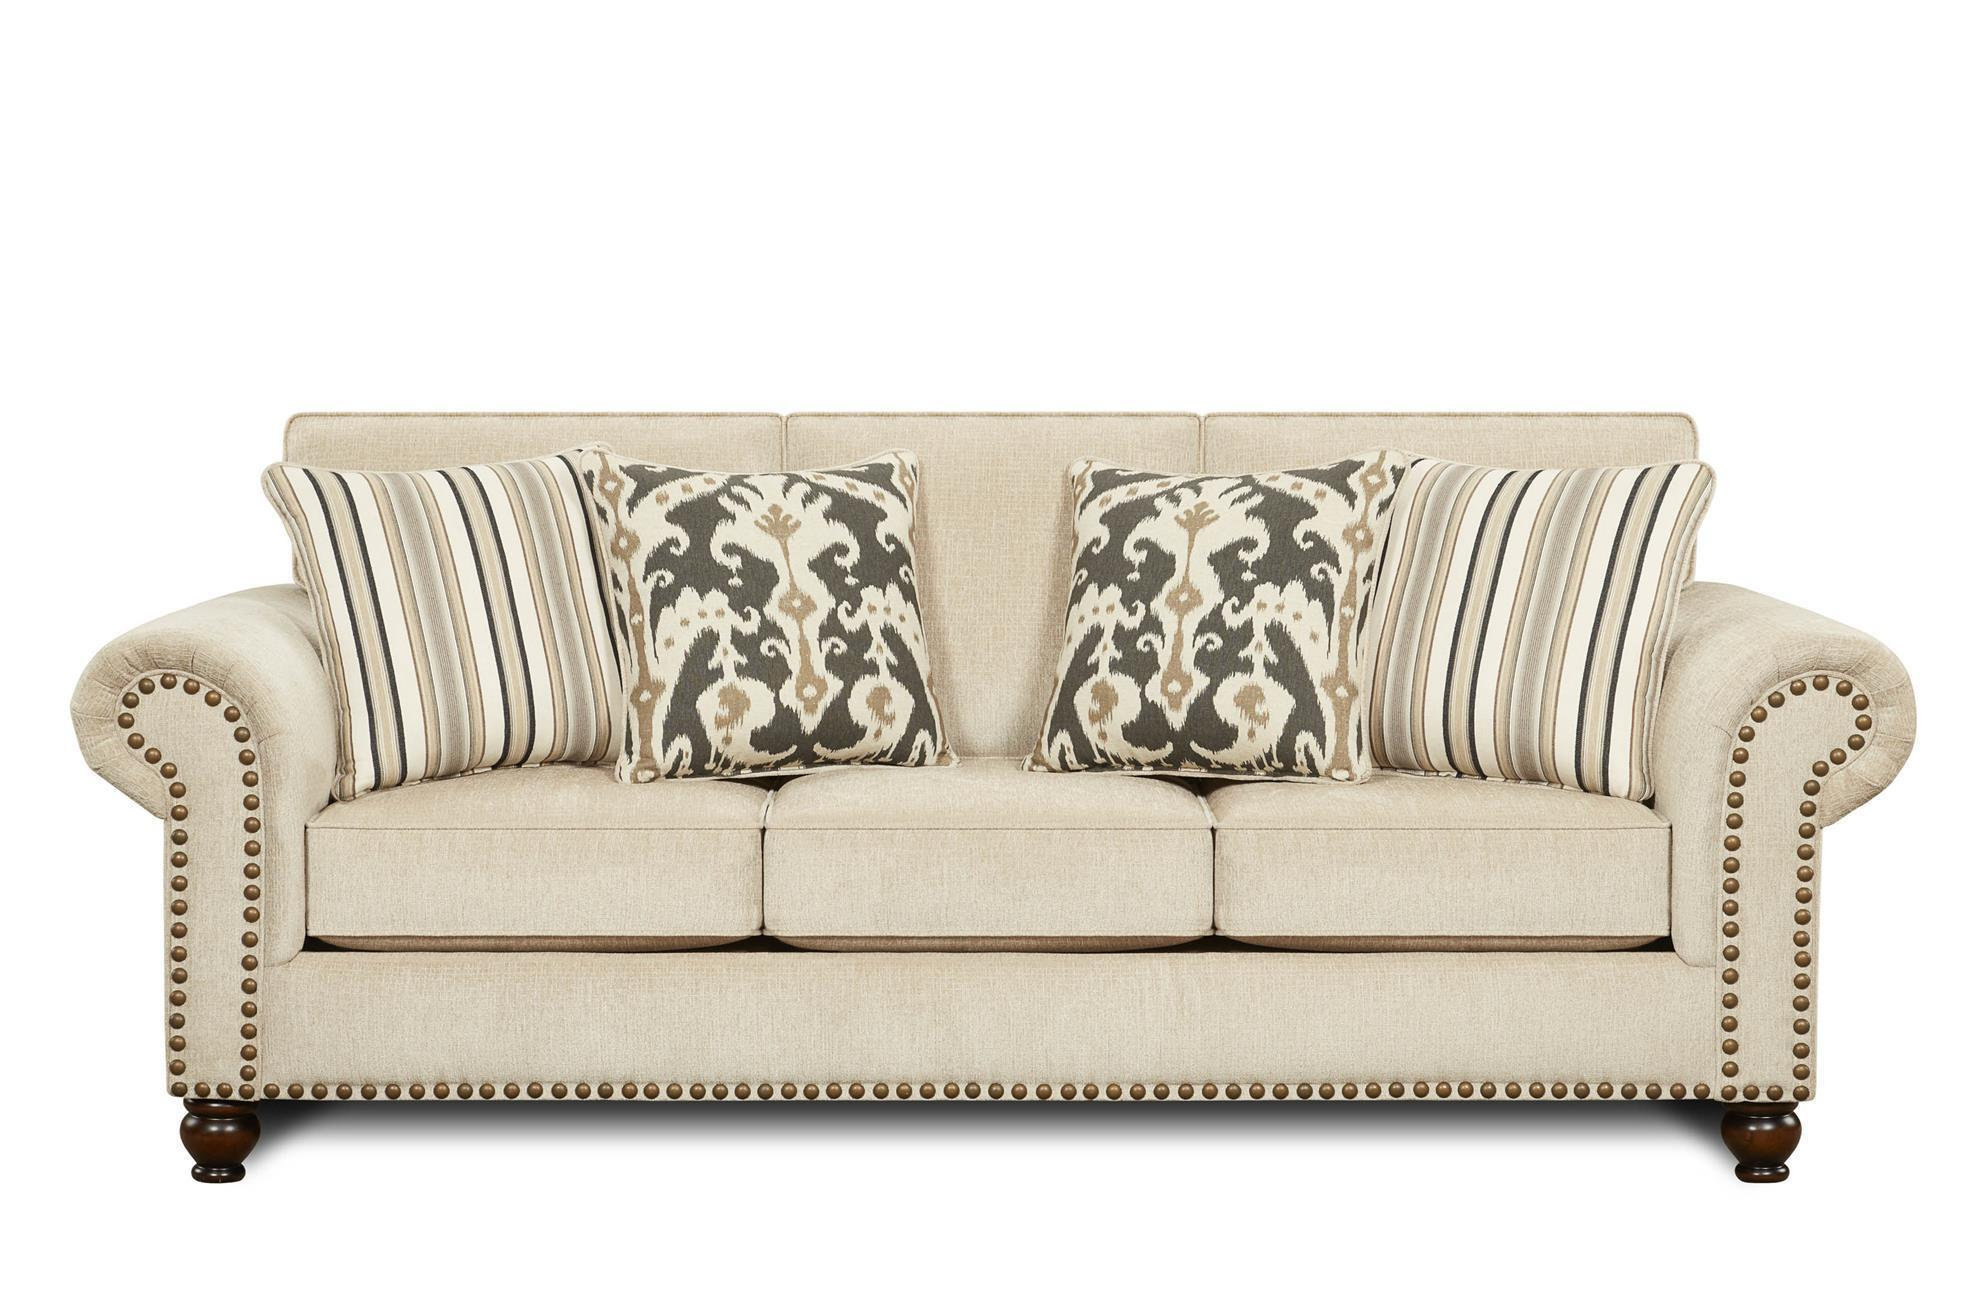 fusion furniture 3110 fairly sand sofa with nail head trim accent - miskelly furniture